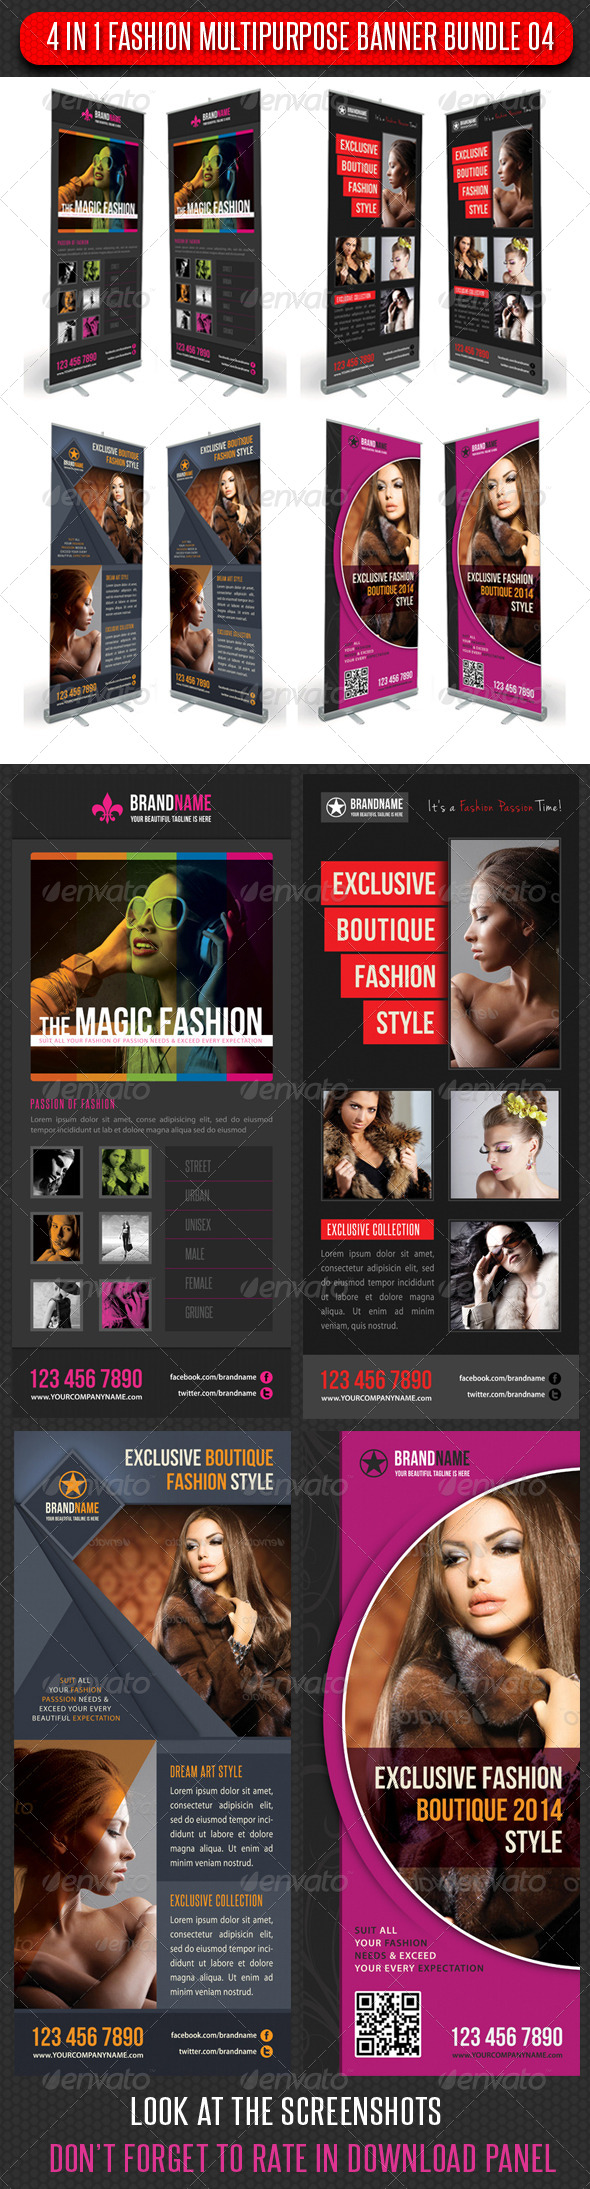 GraphicRiver 4 in 1 Fashion Multipurpose Banner Bundle 04 6358858